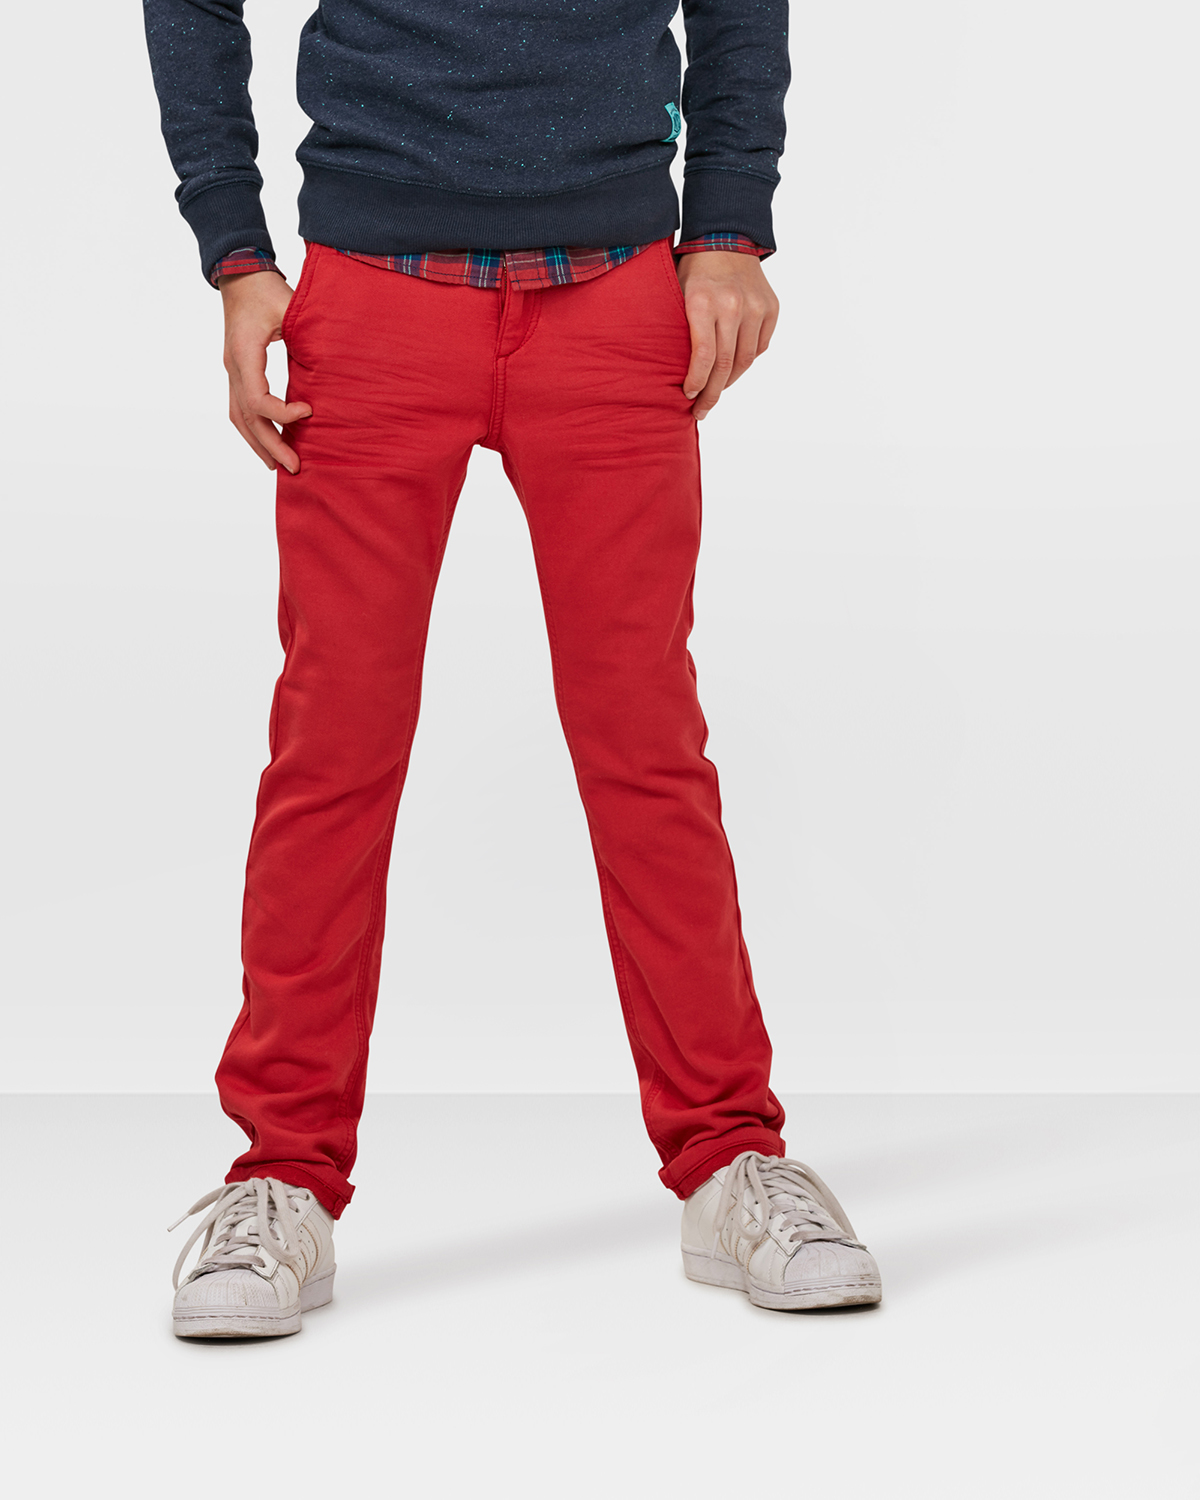 JONGENS SKINNY FIT JOG DENIM Rood